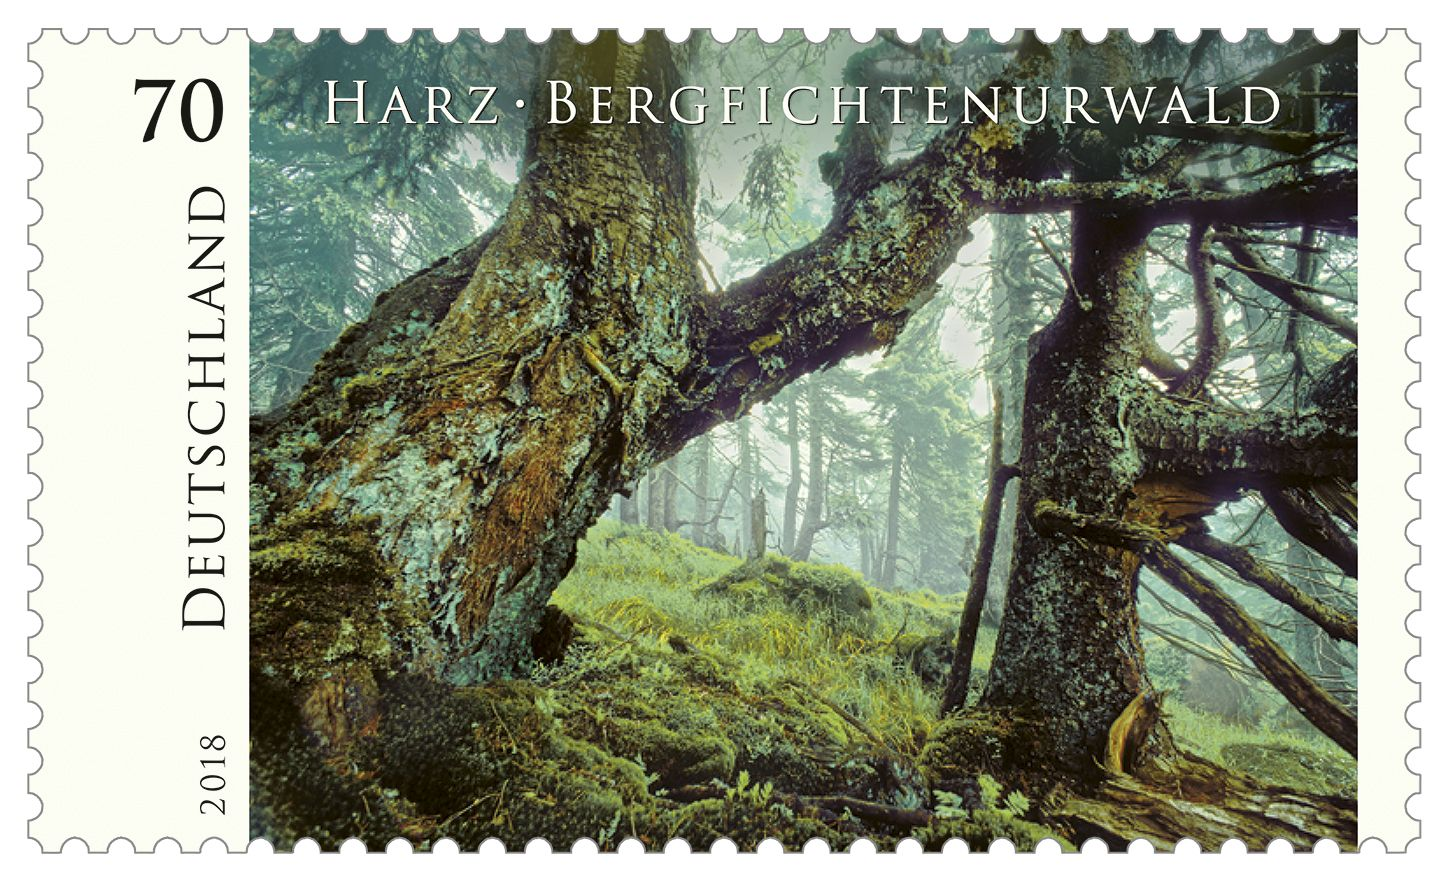 pinmody harp on a stamp collection with images